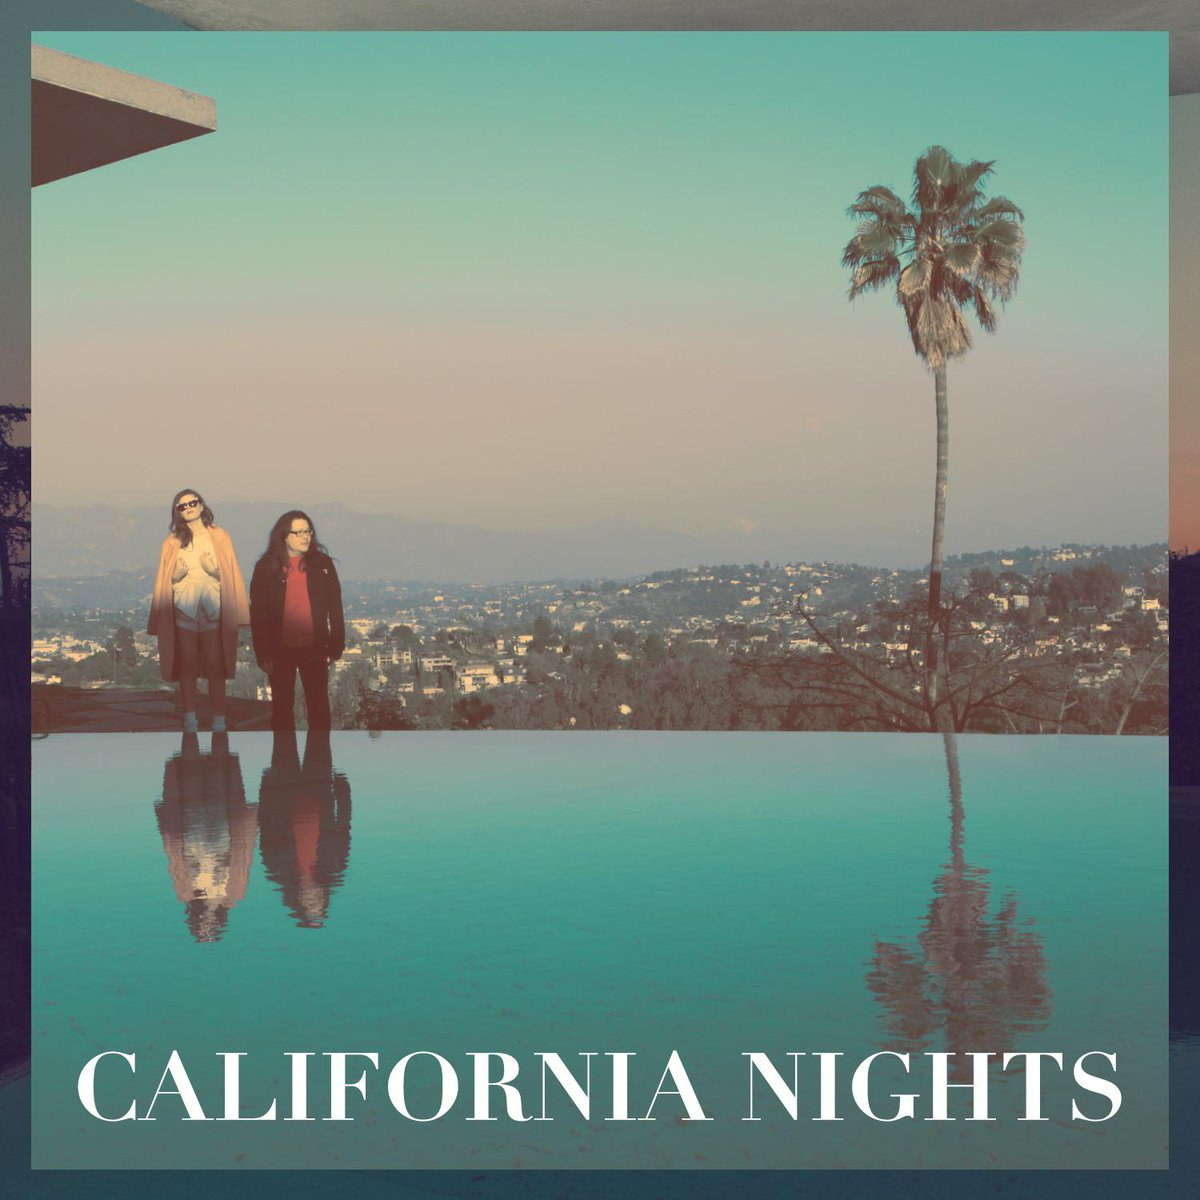 Preorder #CaliforniaNights from @best_coast now and get exclusive ticket presale access: http://t.co/2dM03Ai6oS http://t.co/ifHrksTVTJ